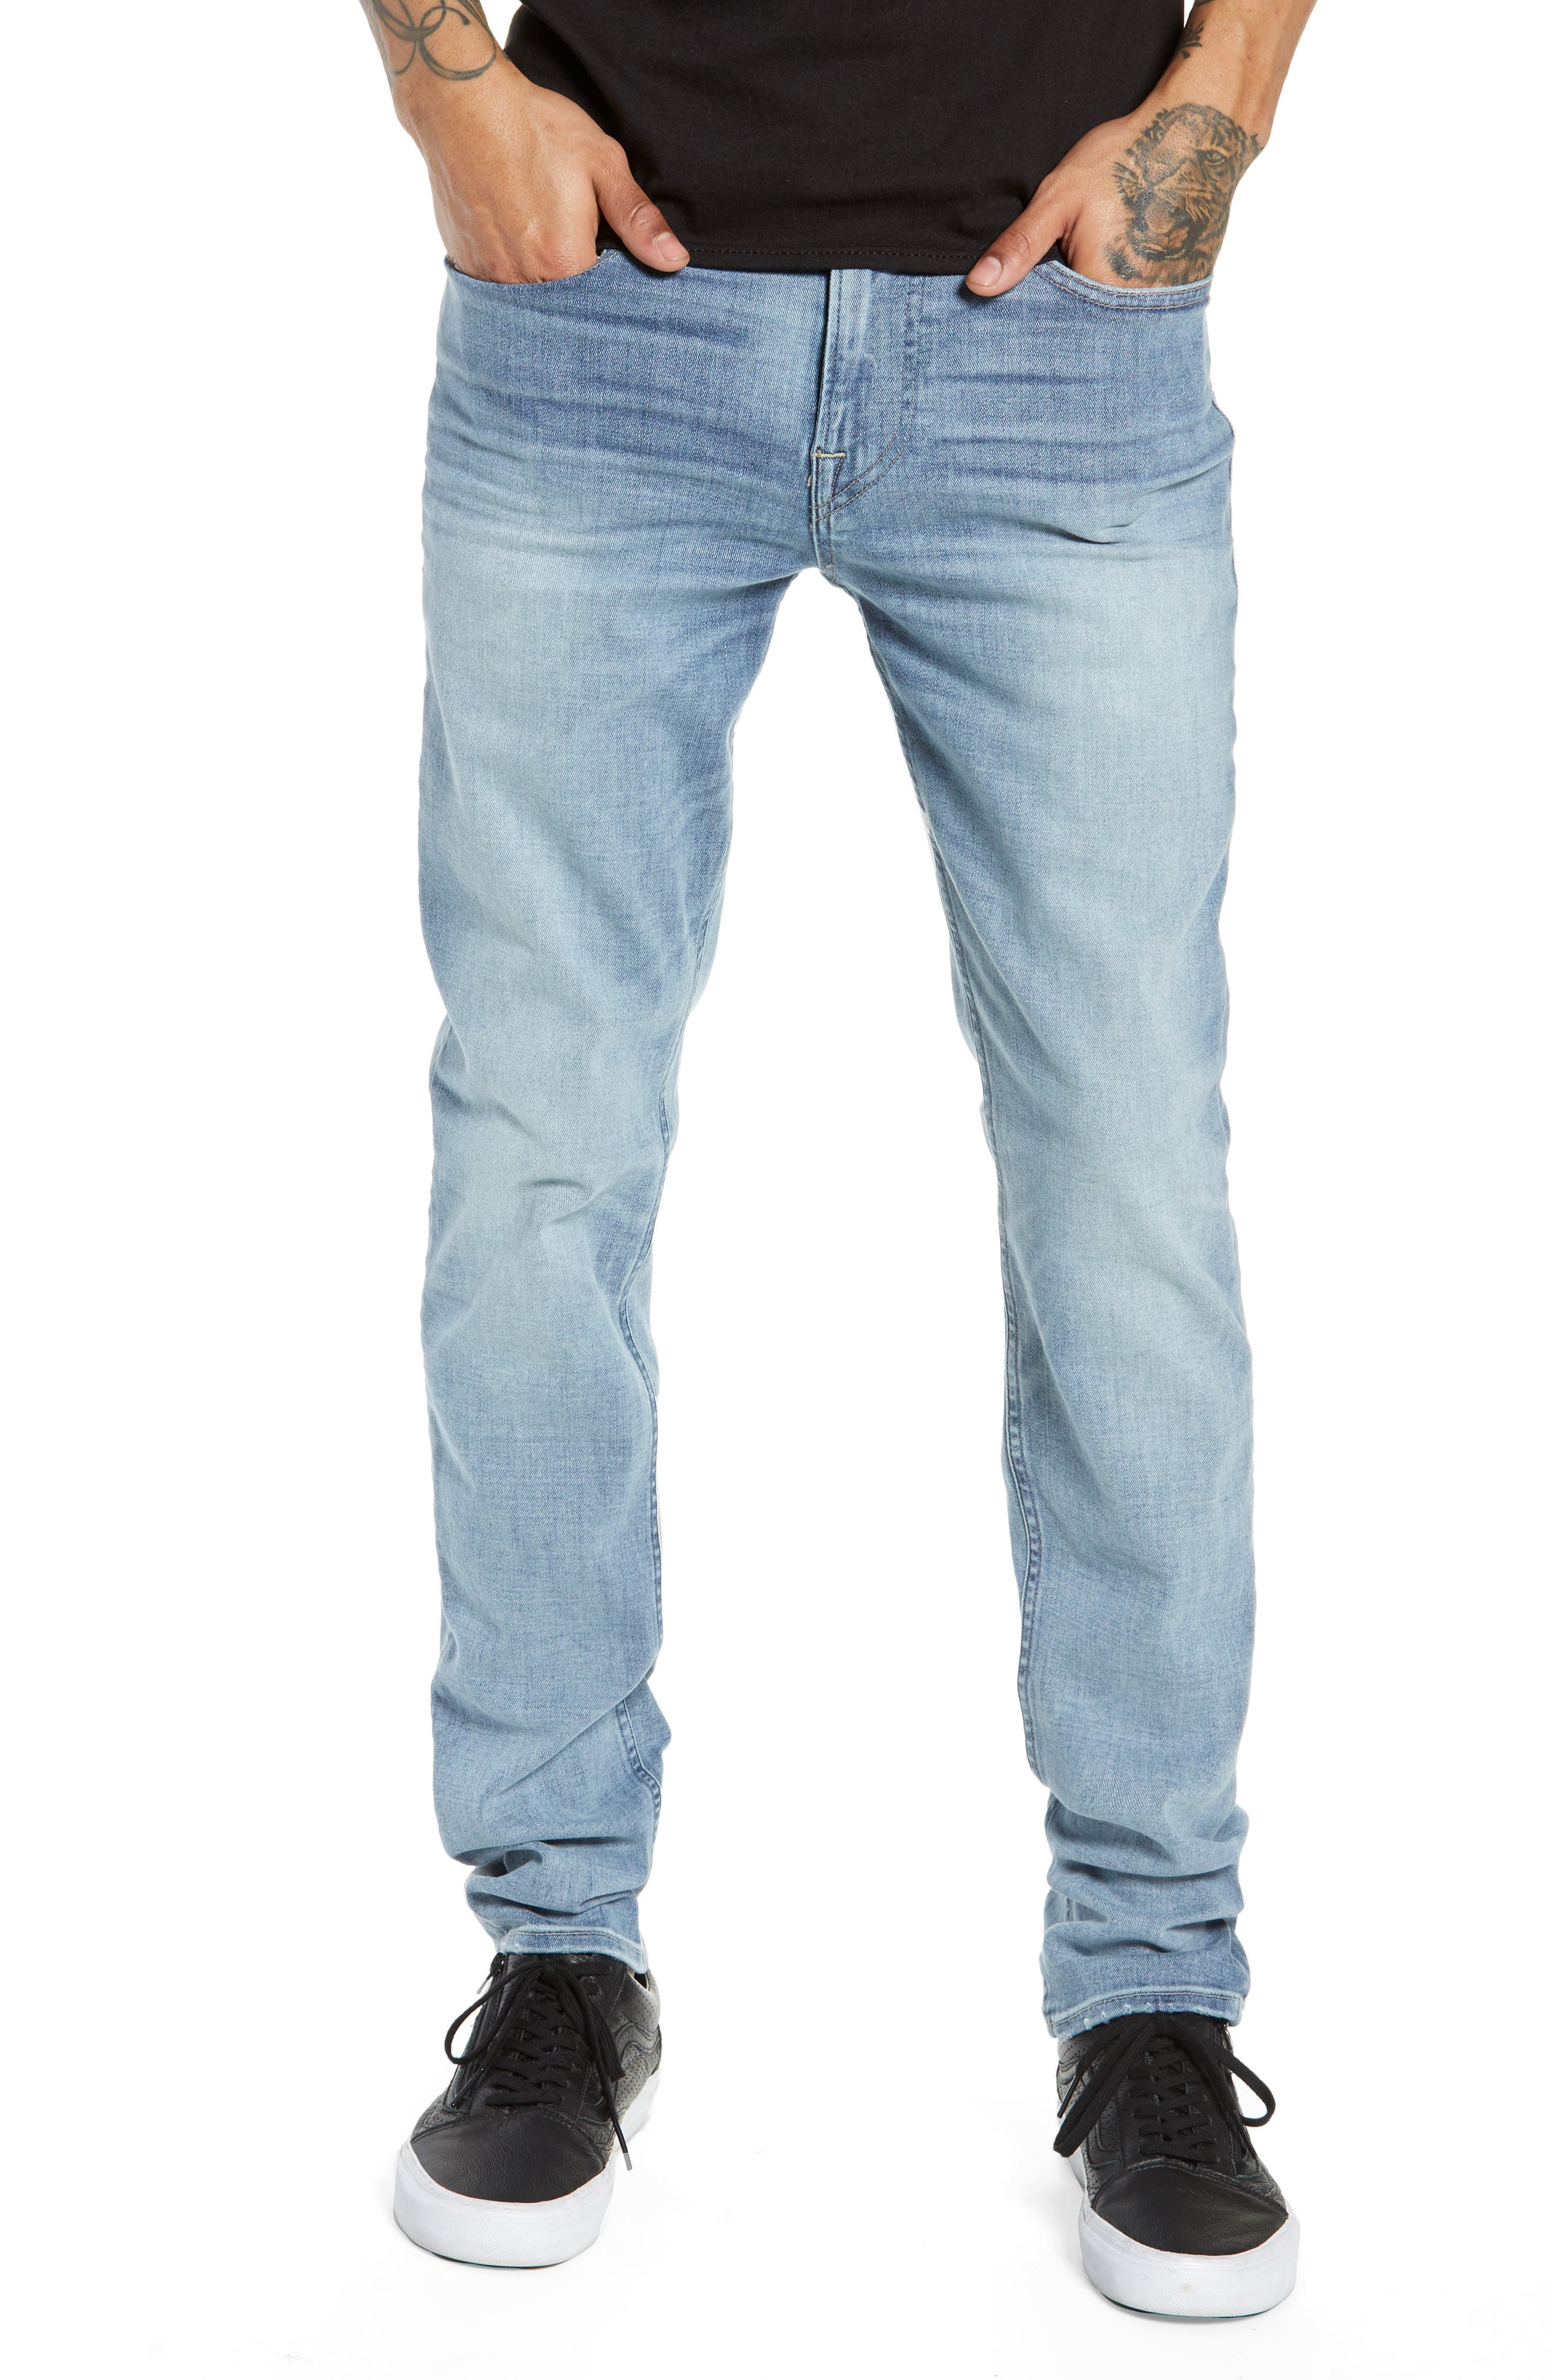 Axl Skinny Jeans,                             Main thumbnail 1, color,                             ROSEWEL